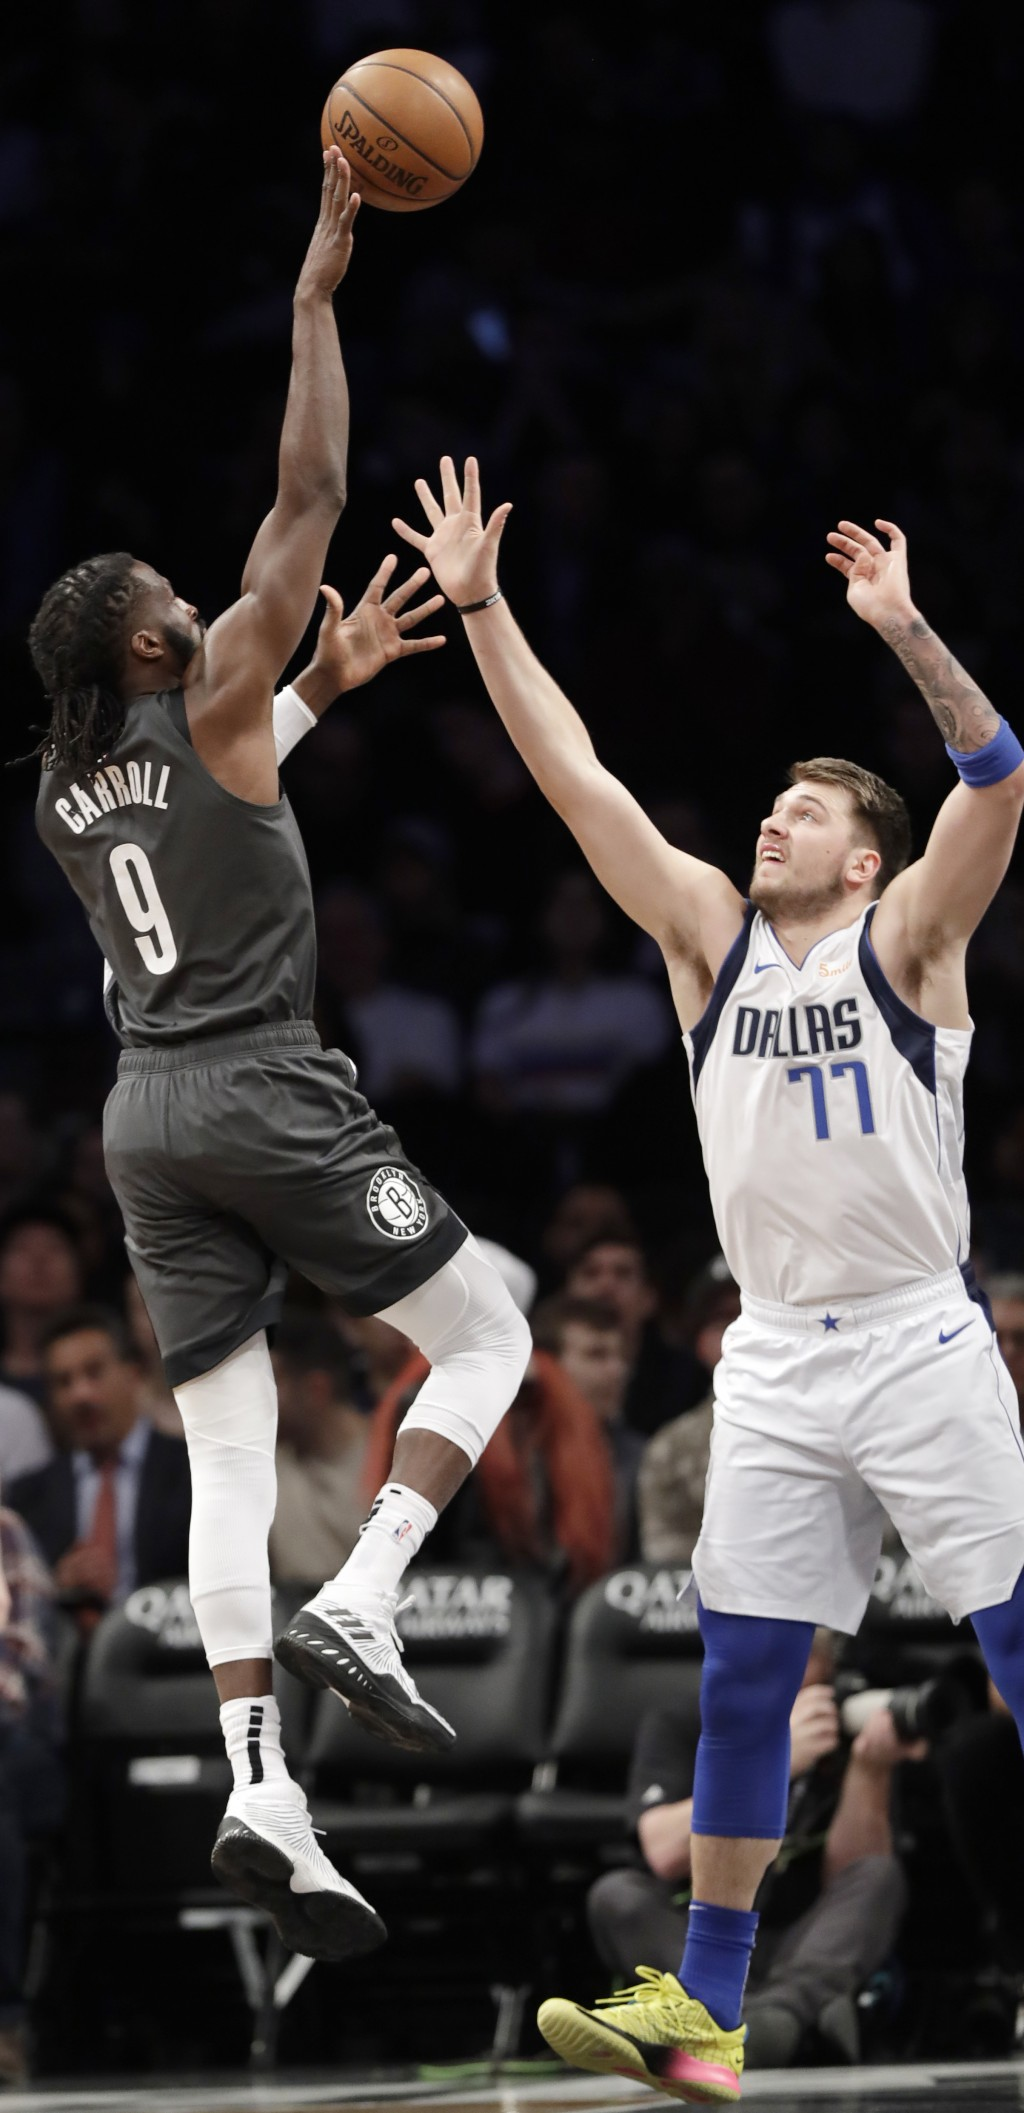 Brooklyn Nets forward DeMarre Carroll (9) shoots a three-point basket with Dallas Mavericks forward Luka Doncic (77) defending against him during the ...